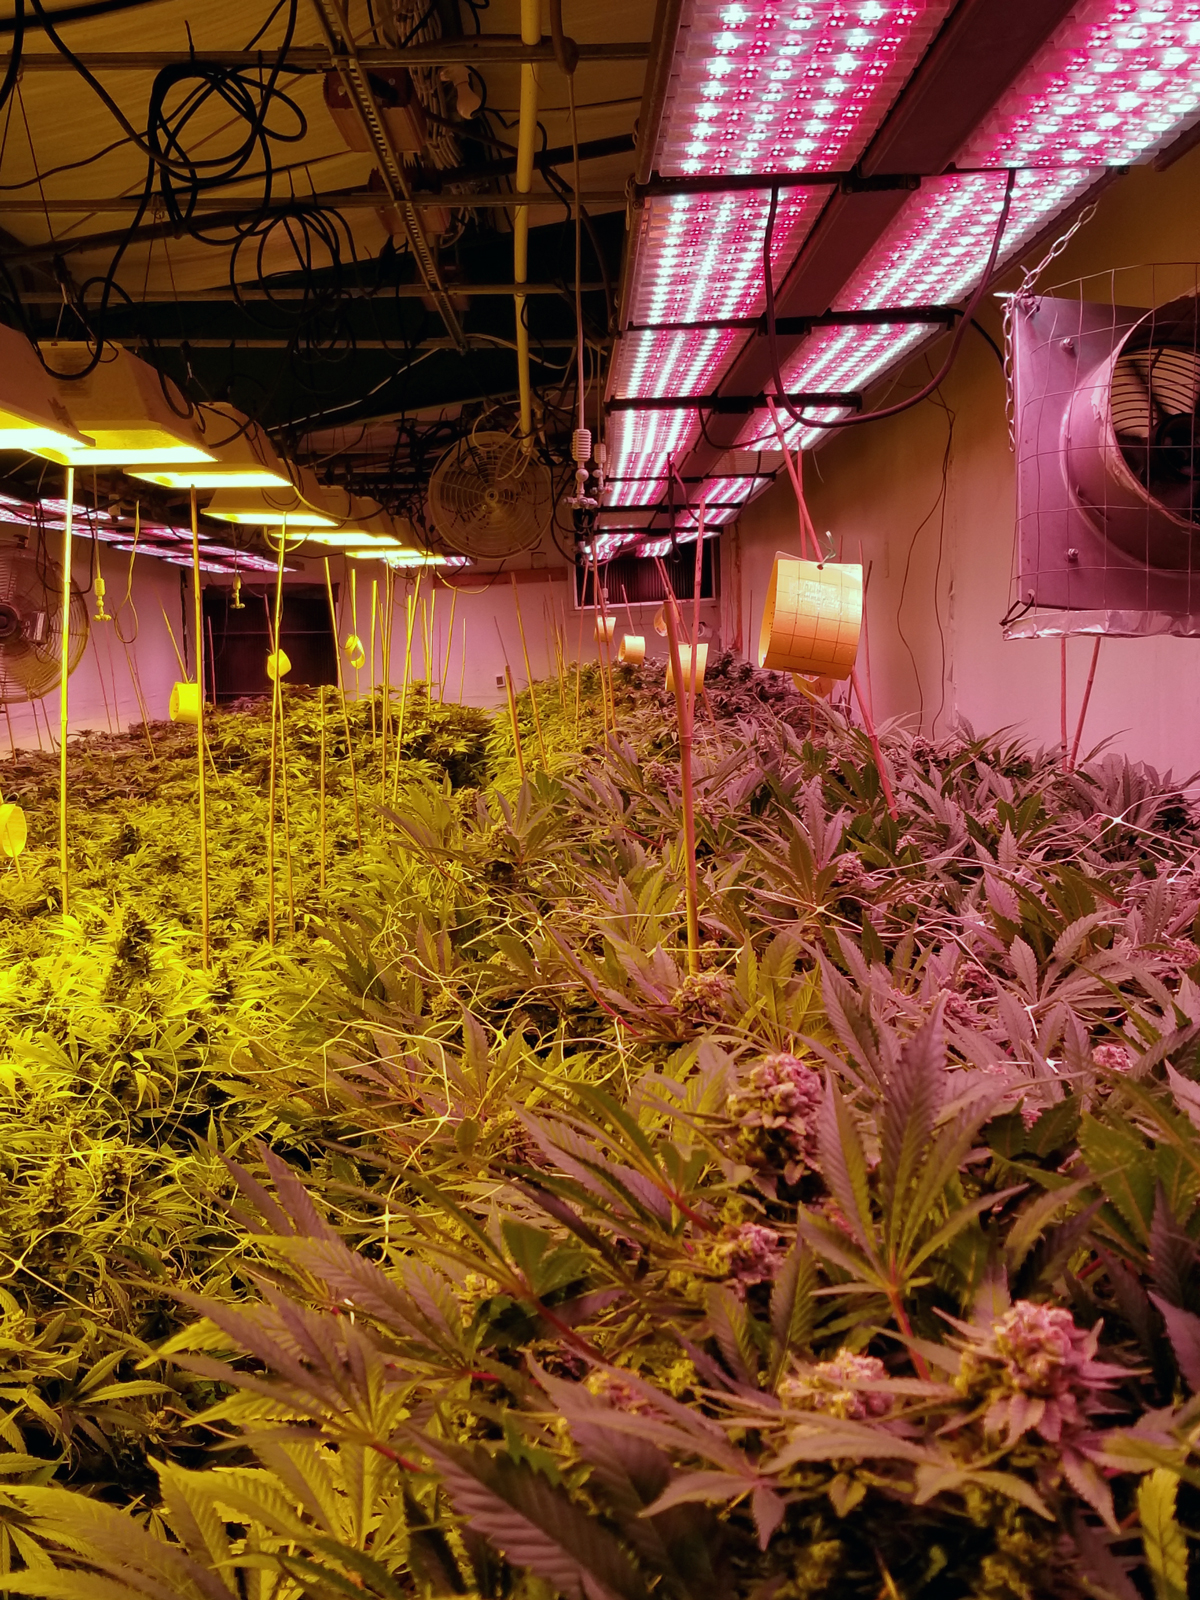 Raven Grass's grow rooms are a sight to behold. Micah and team take pride in their process.